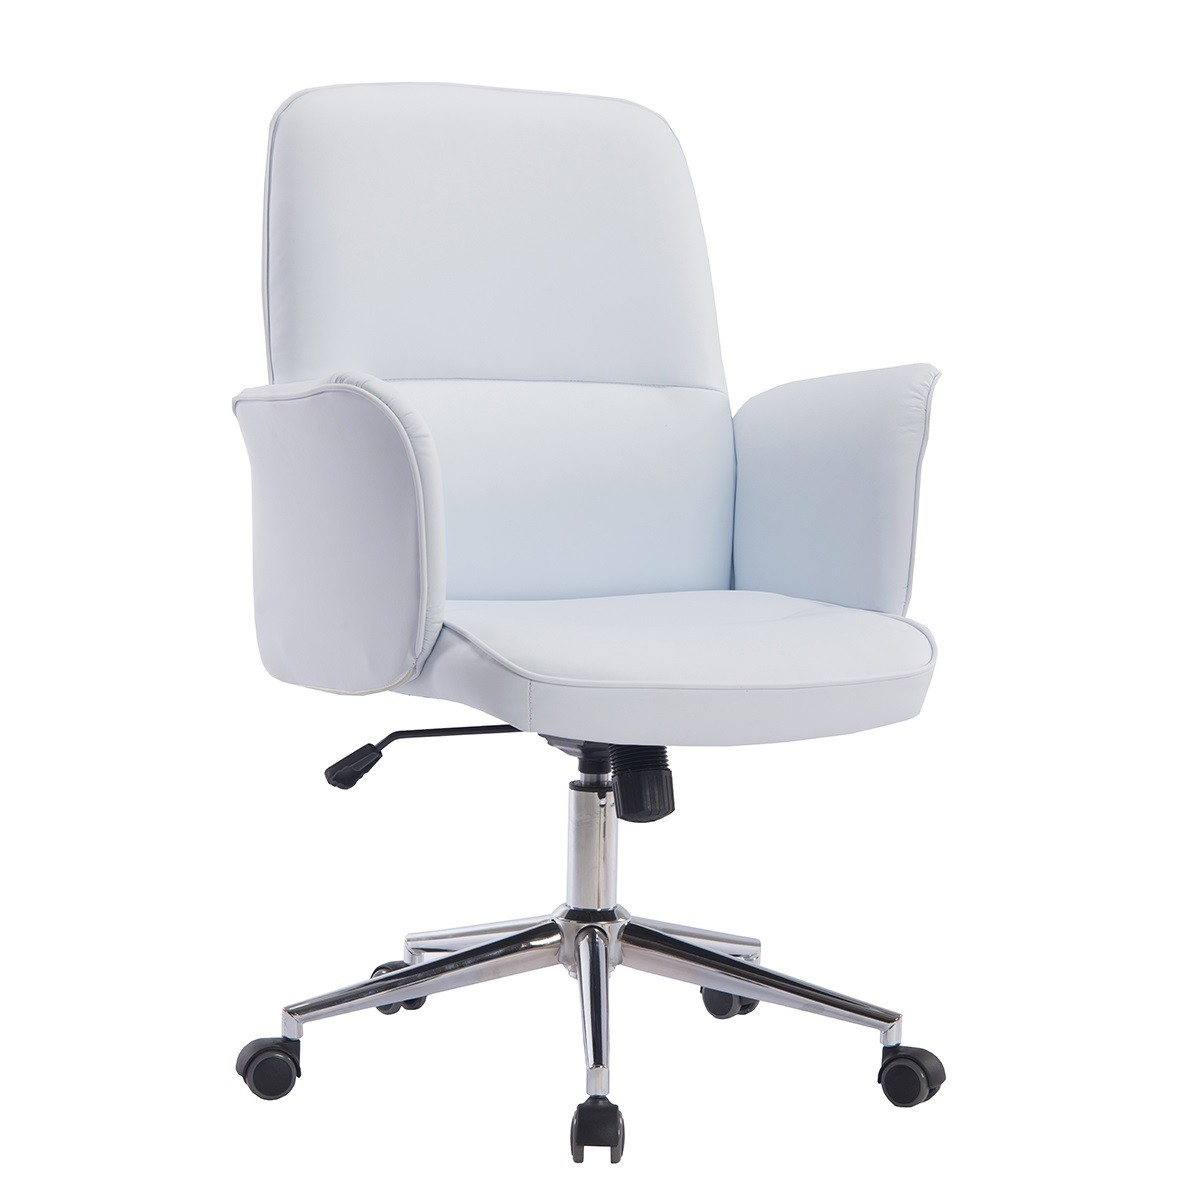 Office Armchair ANCONA, Gas, Tilt, Similpiel White